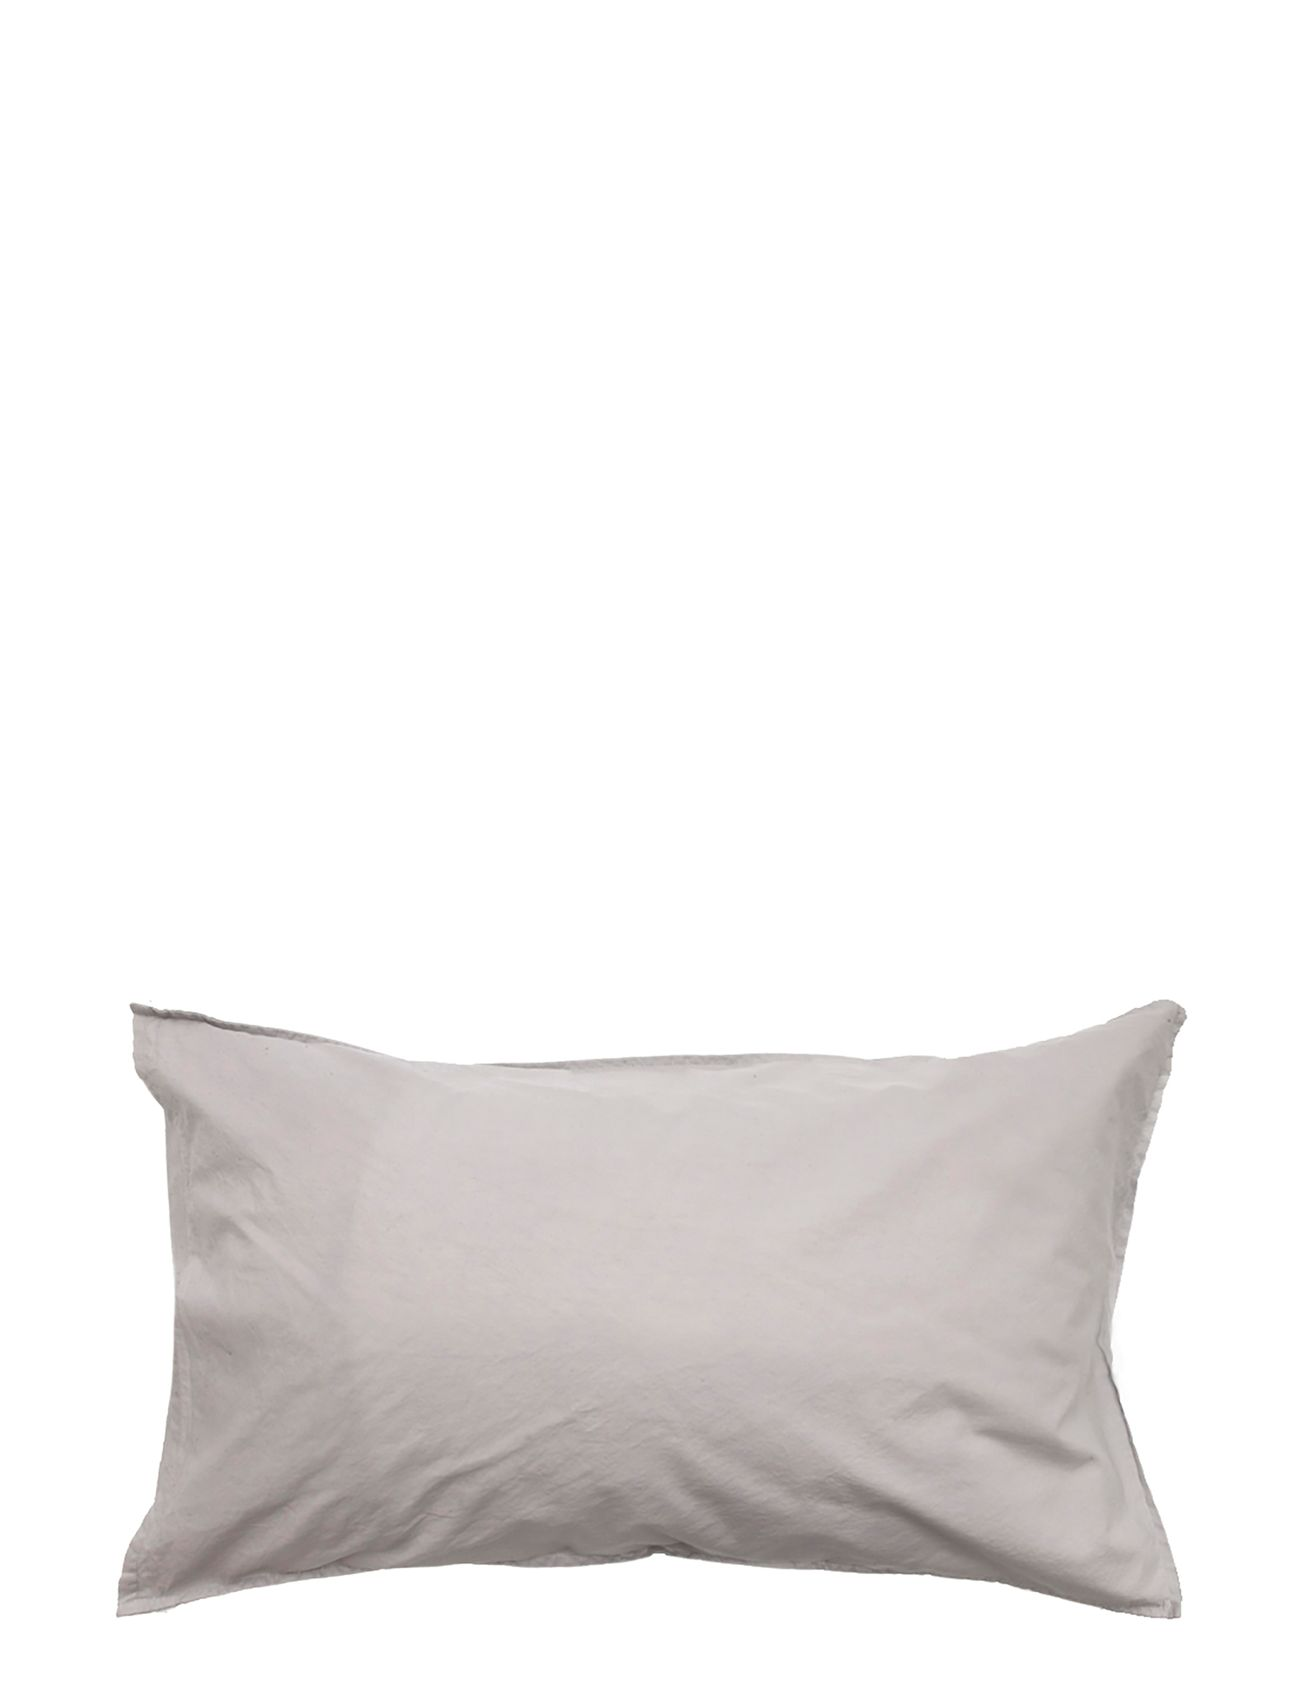 Himla Hope Plain Pillowcase - CLEAN